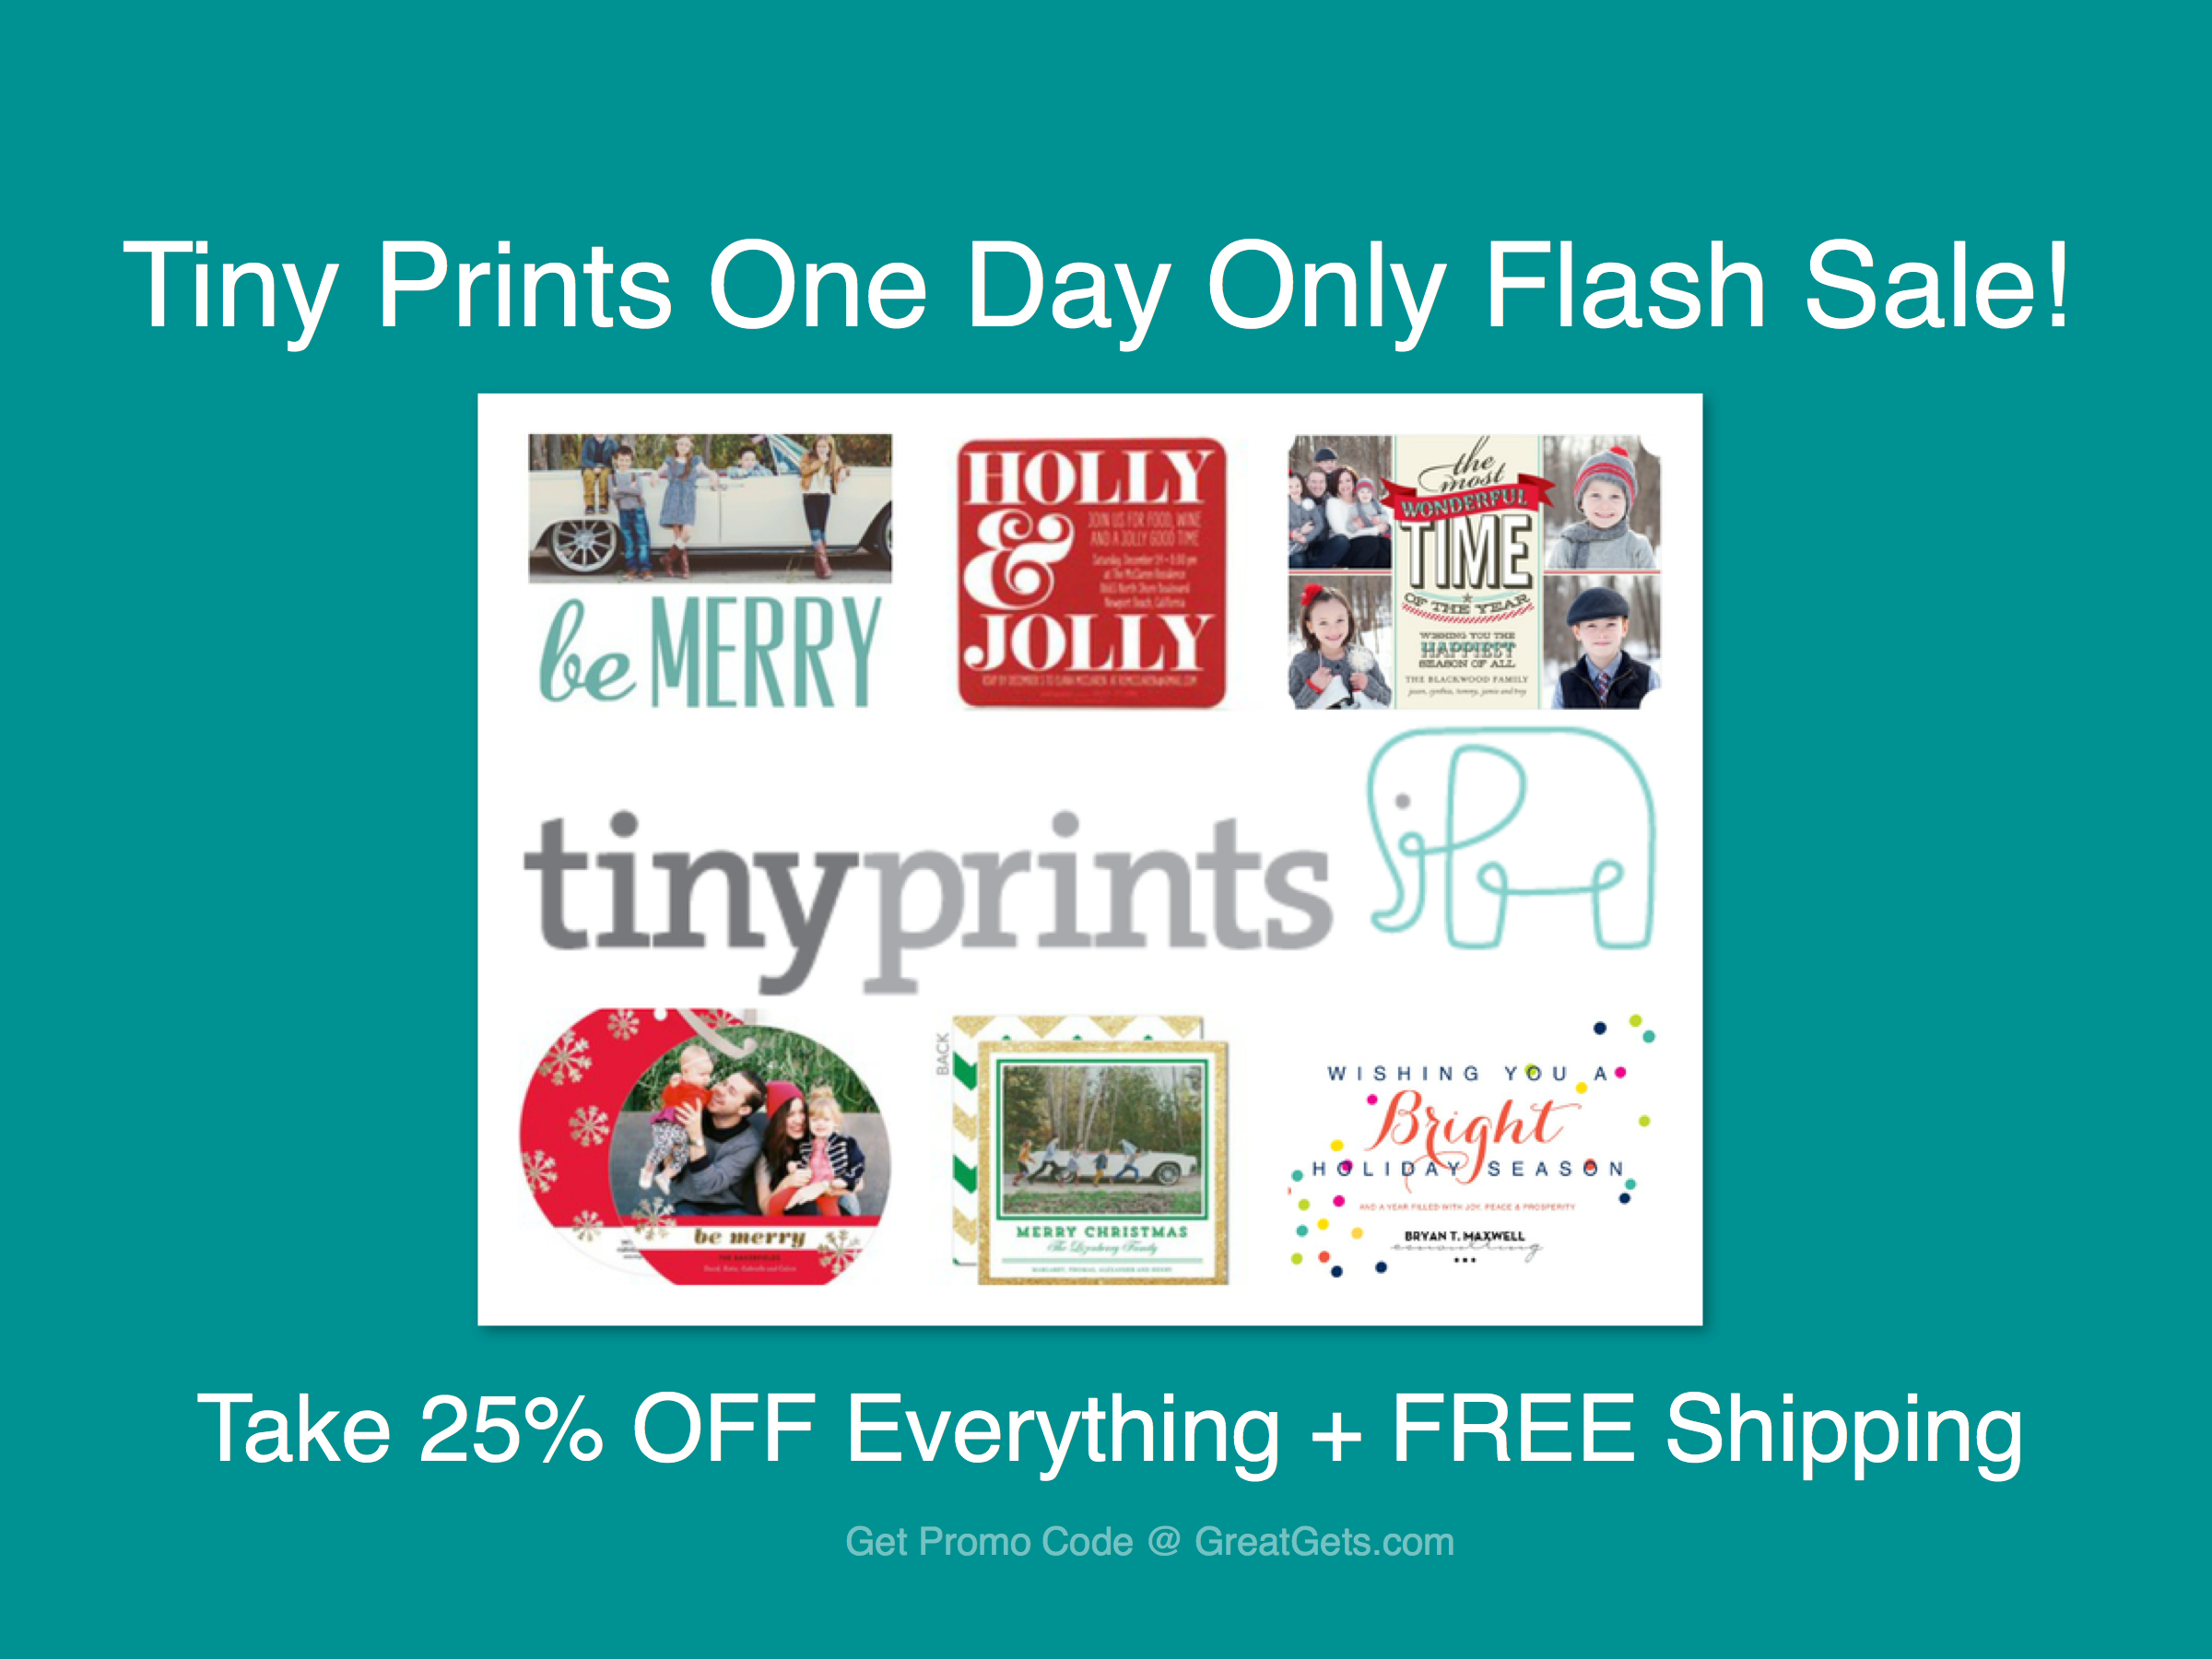 Tiny Prints is a reliable site providing all styles of online prints and home decor at the most reasonable prices. You can get here invitations, announcements, stationery and gifts and more. Check out this store today and use Tiny Prints coupon code to save up to 50% OFF and FREE shipping.